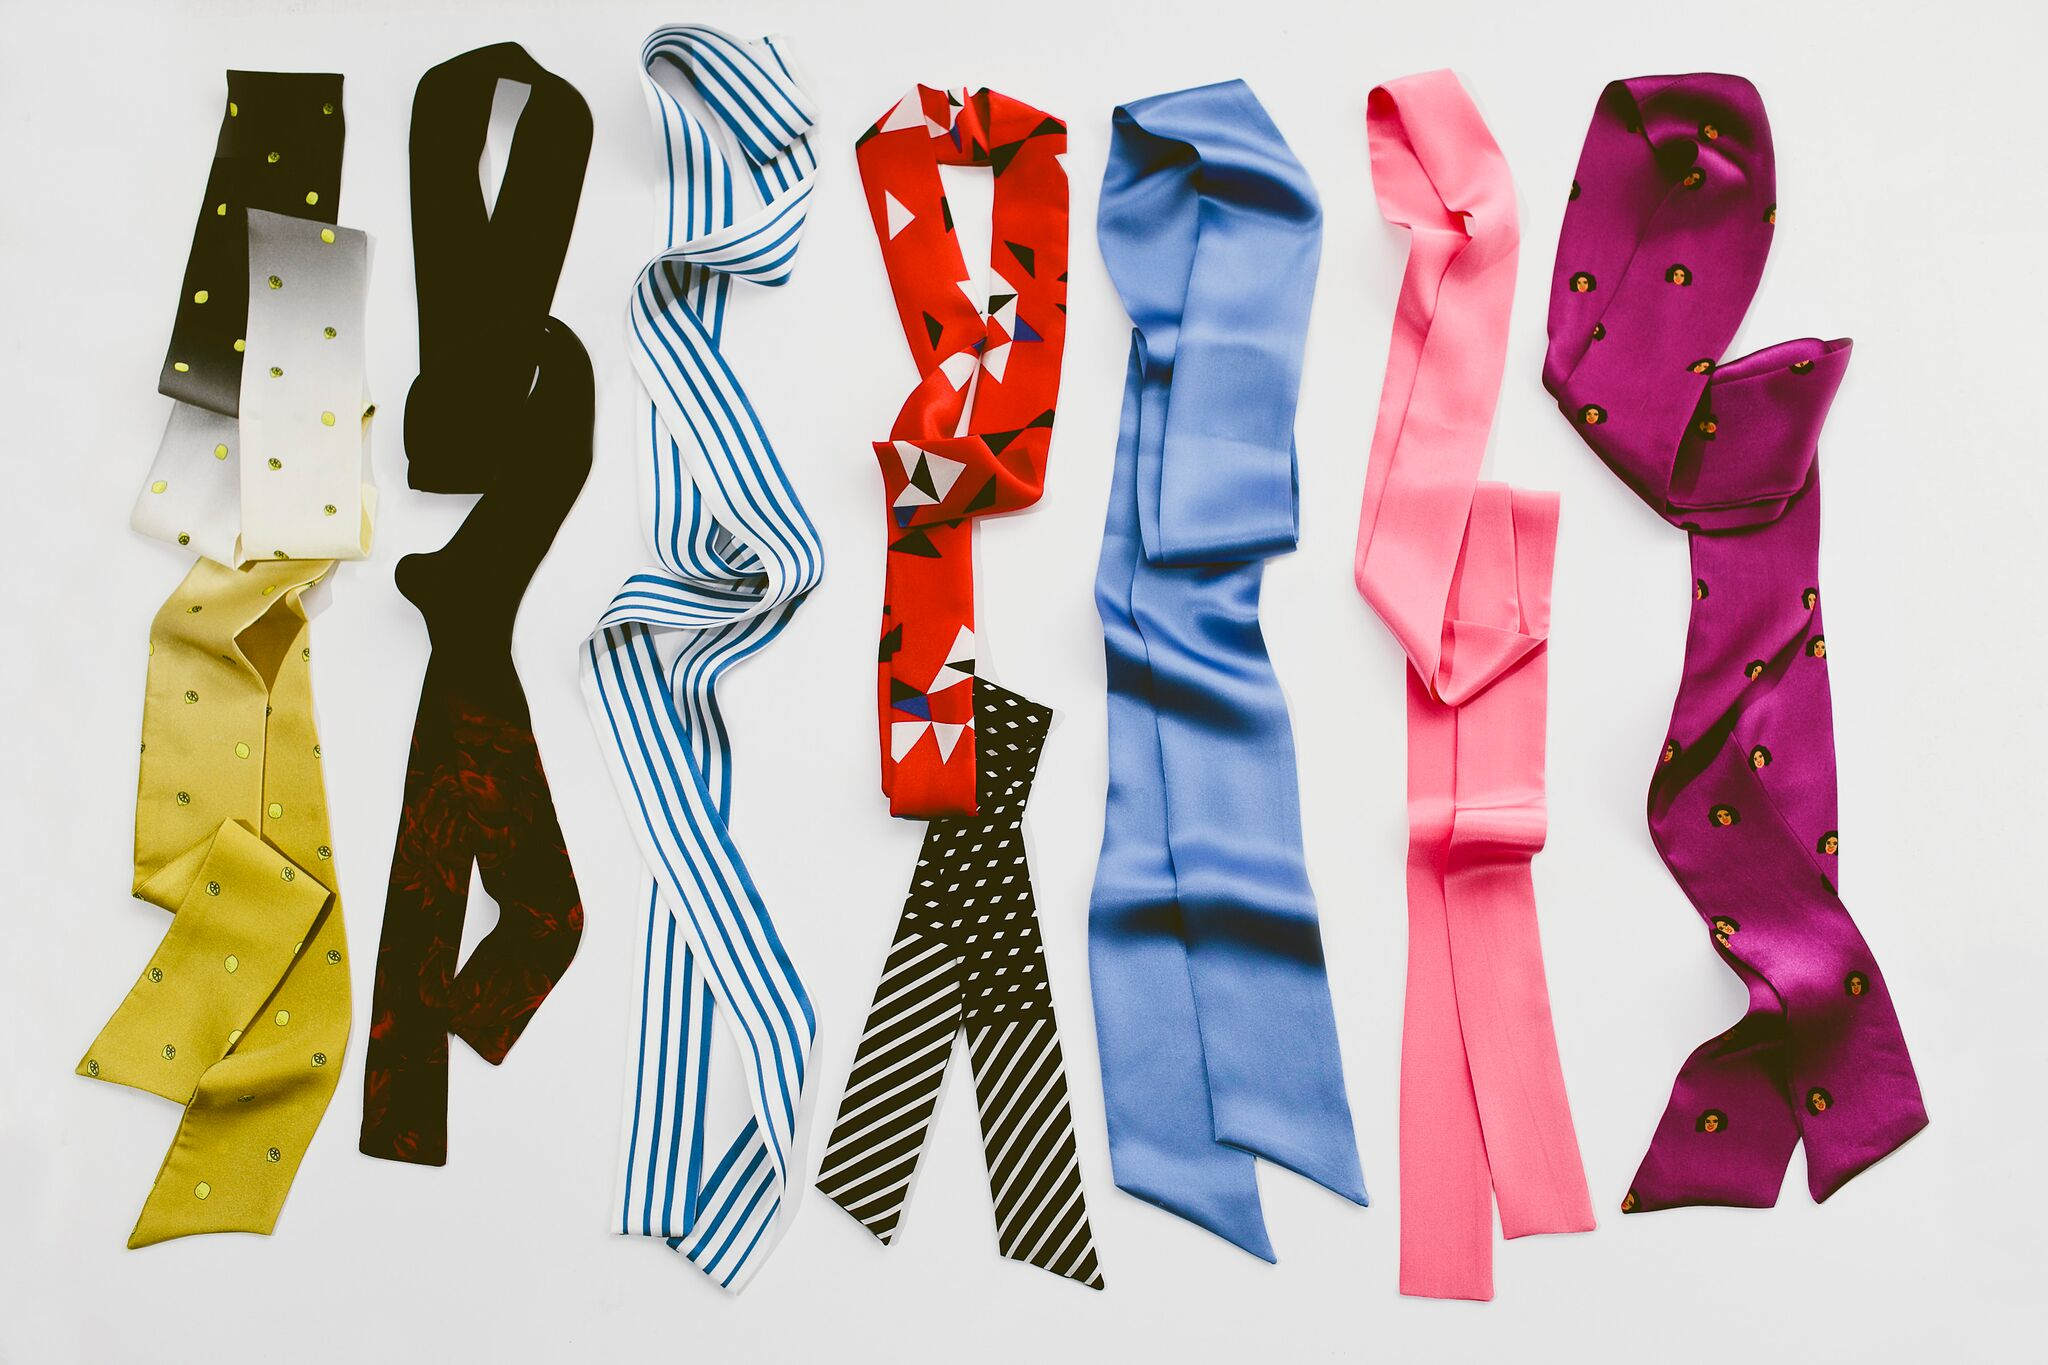 Neckties (aka pussybows) for women and girls that are designed after influential women from history and today.{&amp;nbsp;}(Image @{&amp;nbsp;}Elizabeth Zuluaga for andieanderin)<p></p>